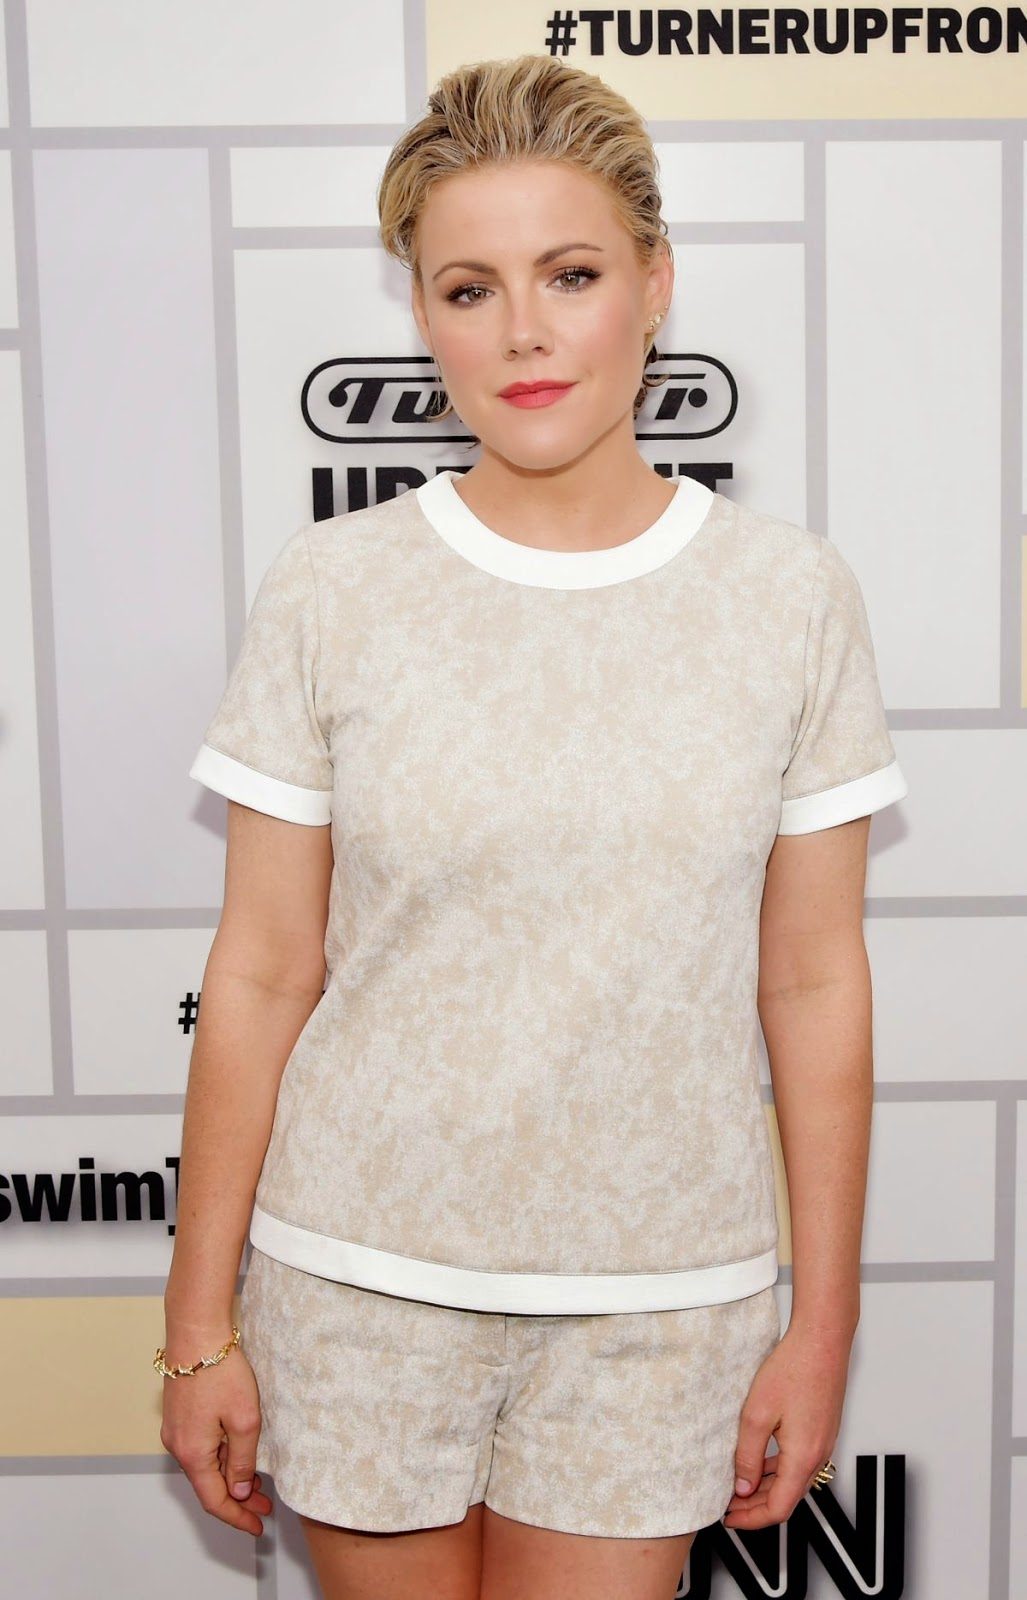 Actress @ Kathleen Robertson At Tturner Upfront 2015 In New York